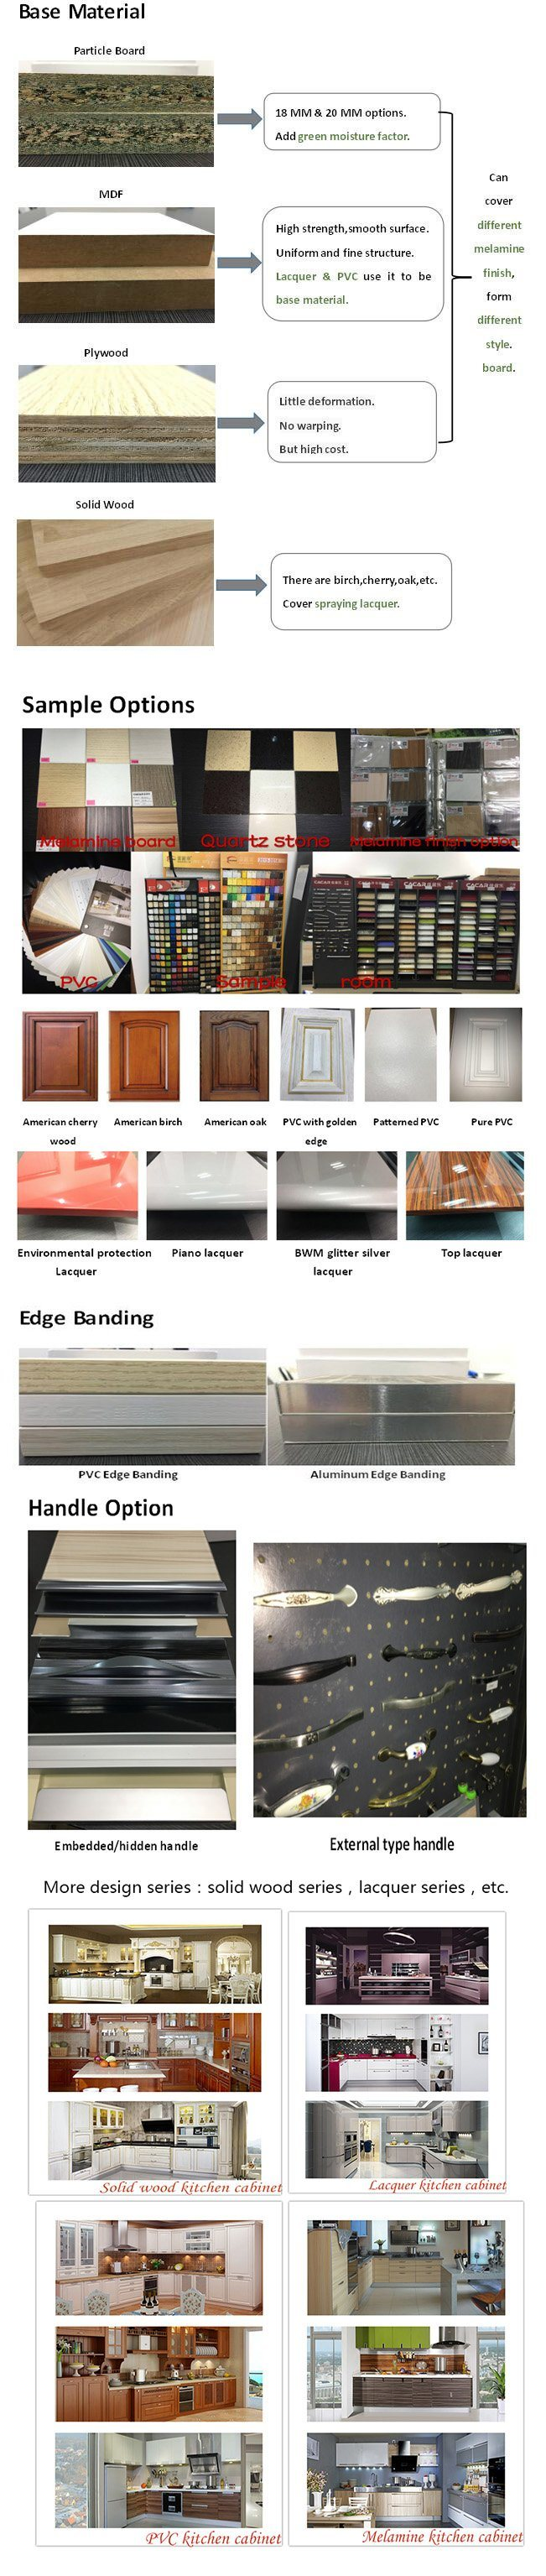 china spring morning fashion stoving varnish finish how to strip varnish from cabinets ehow